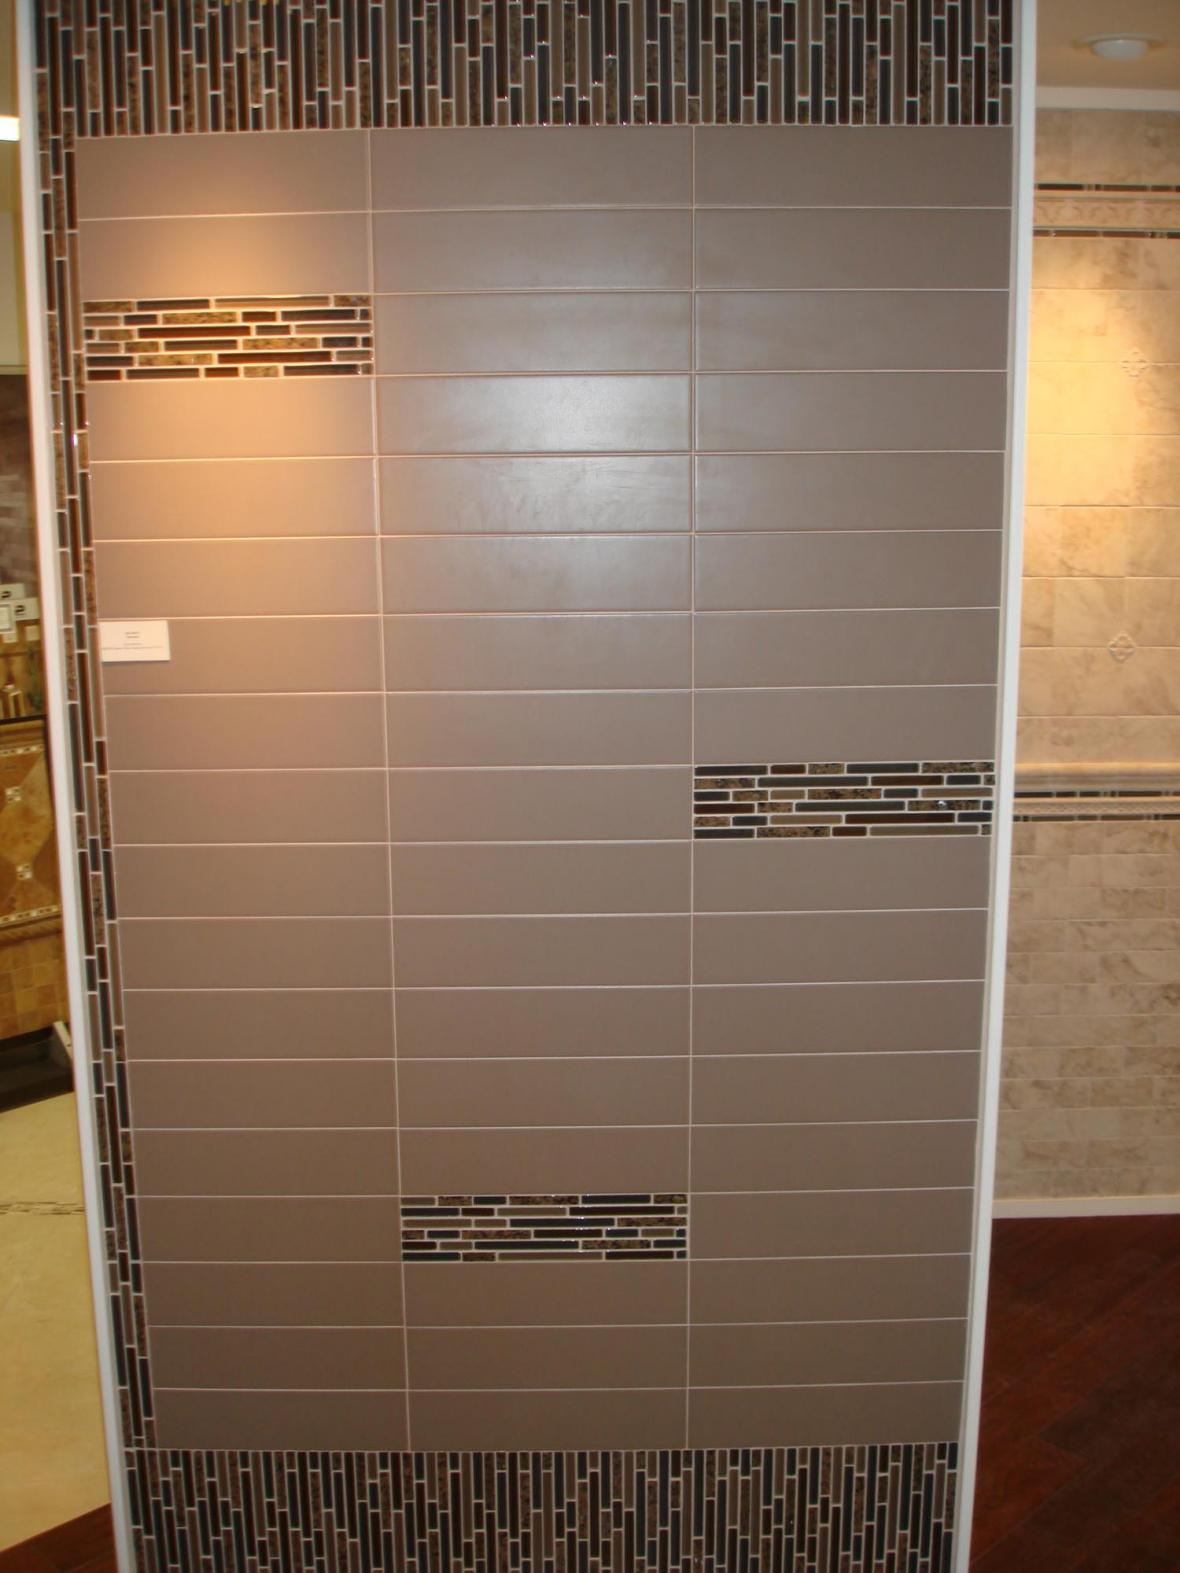 Porcelain and glass wall display